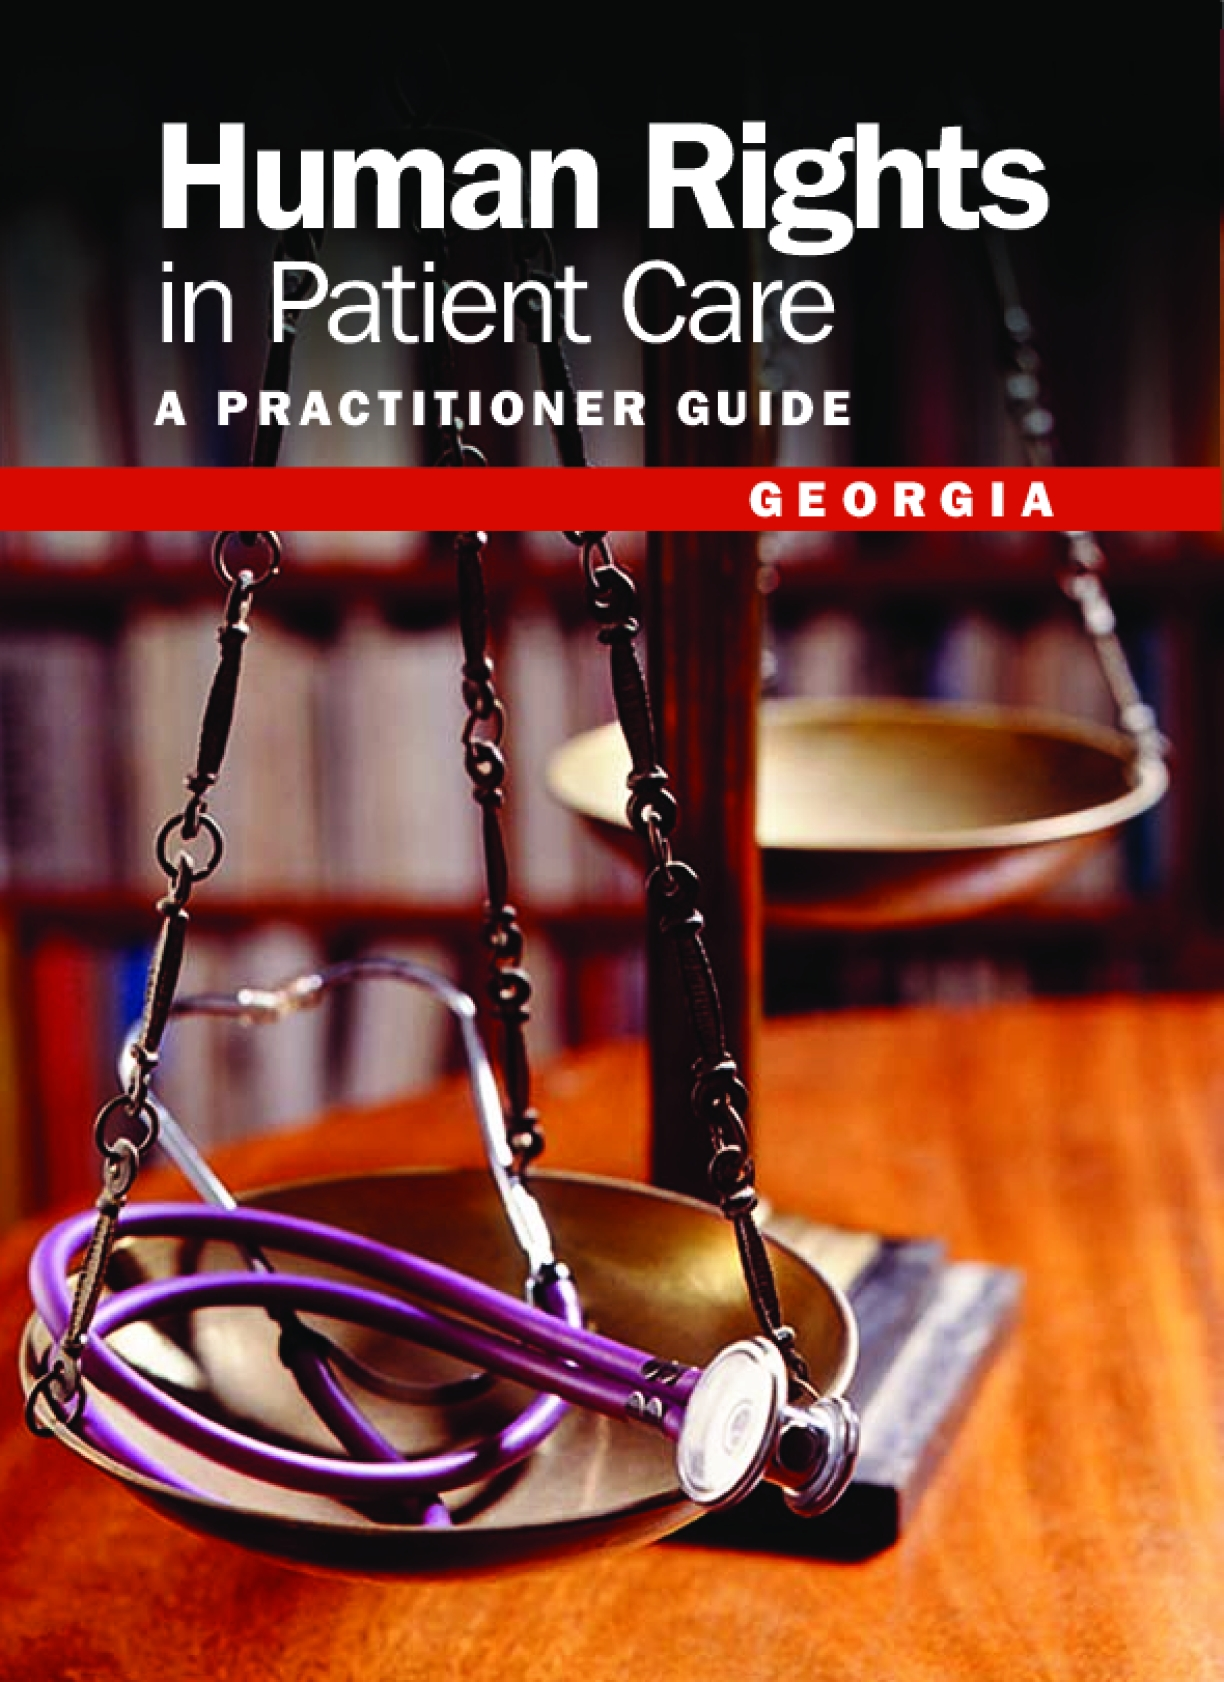 Human Rights in Patient Care: A Practitioner Guide - Georgia